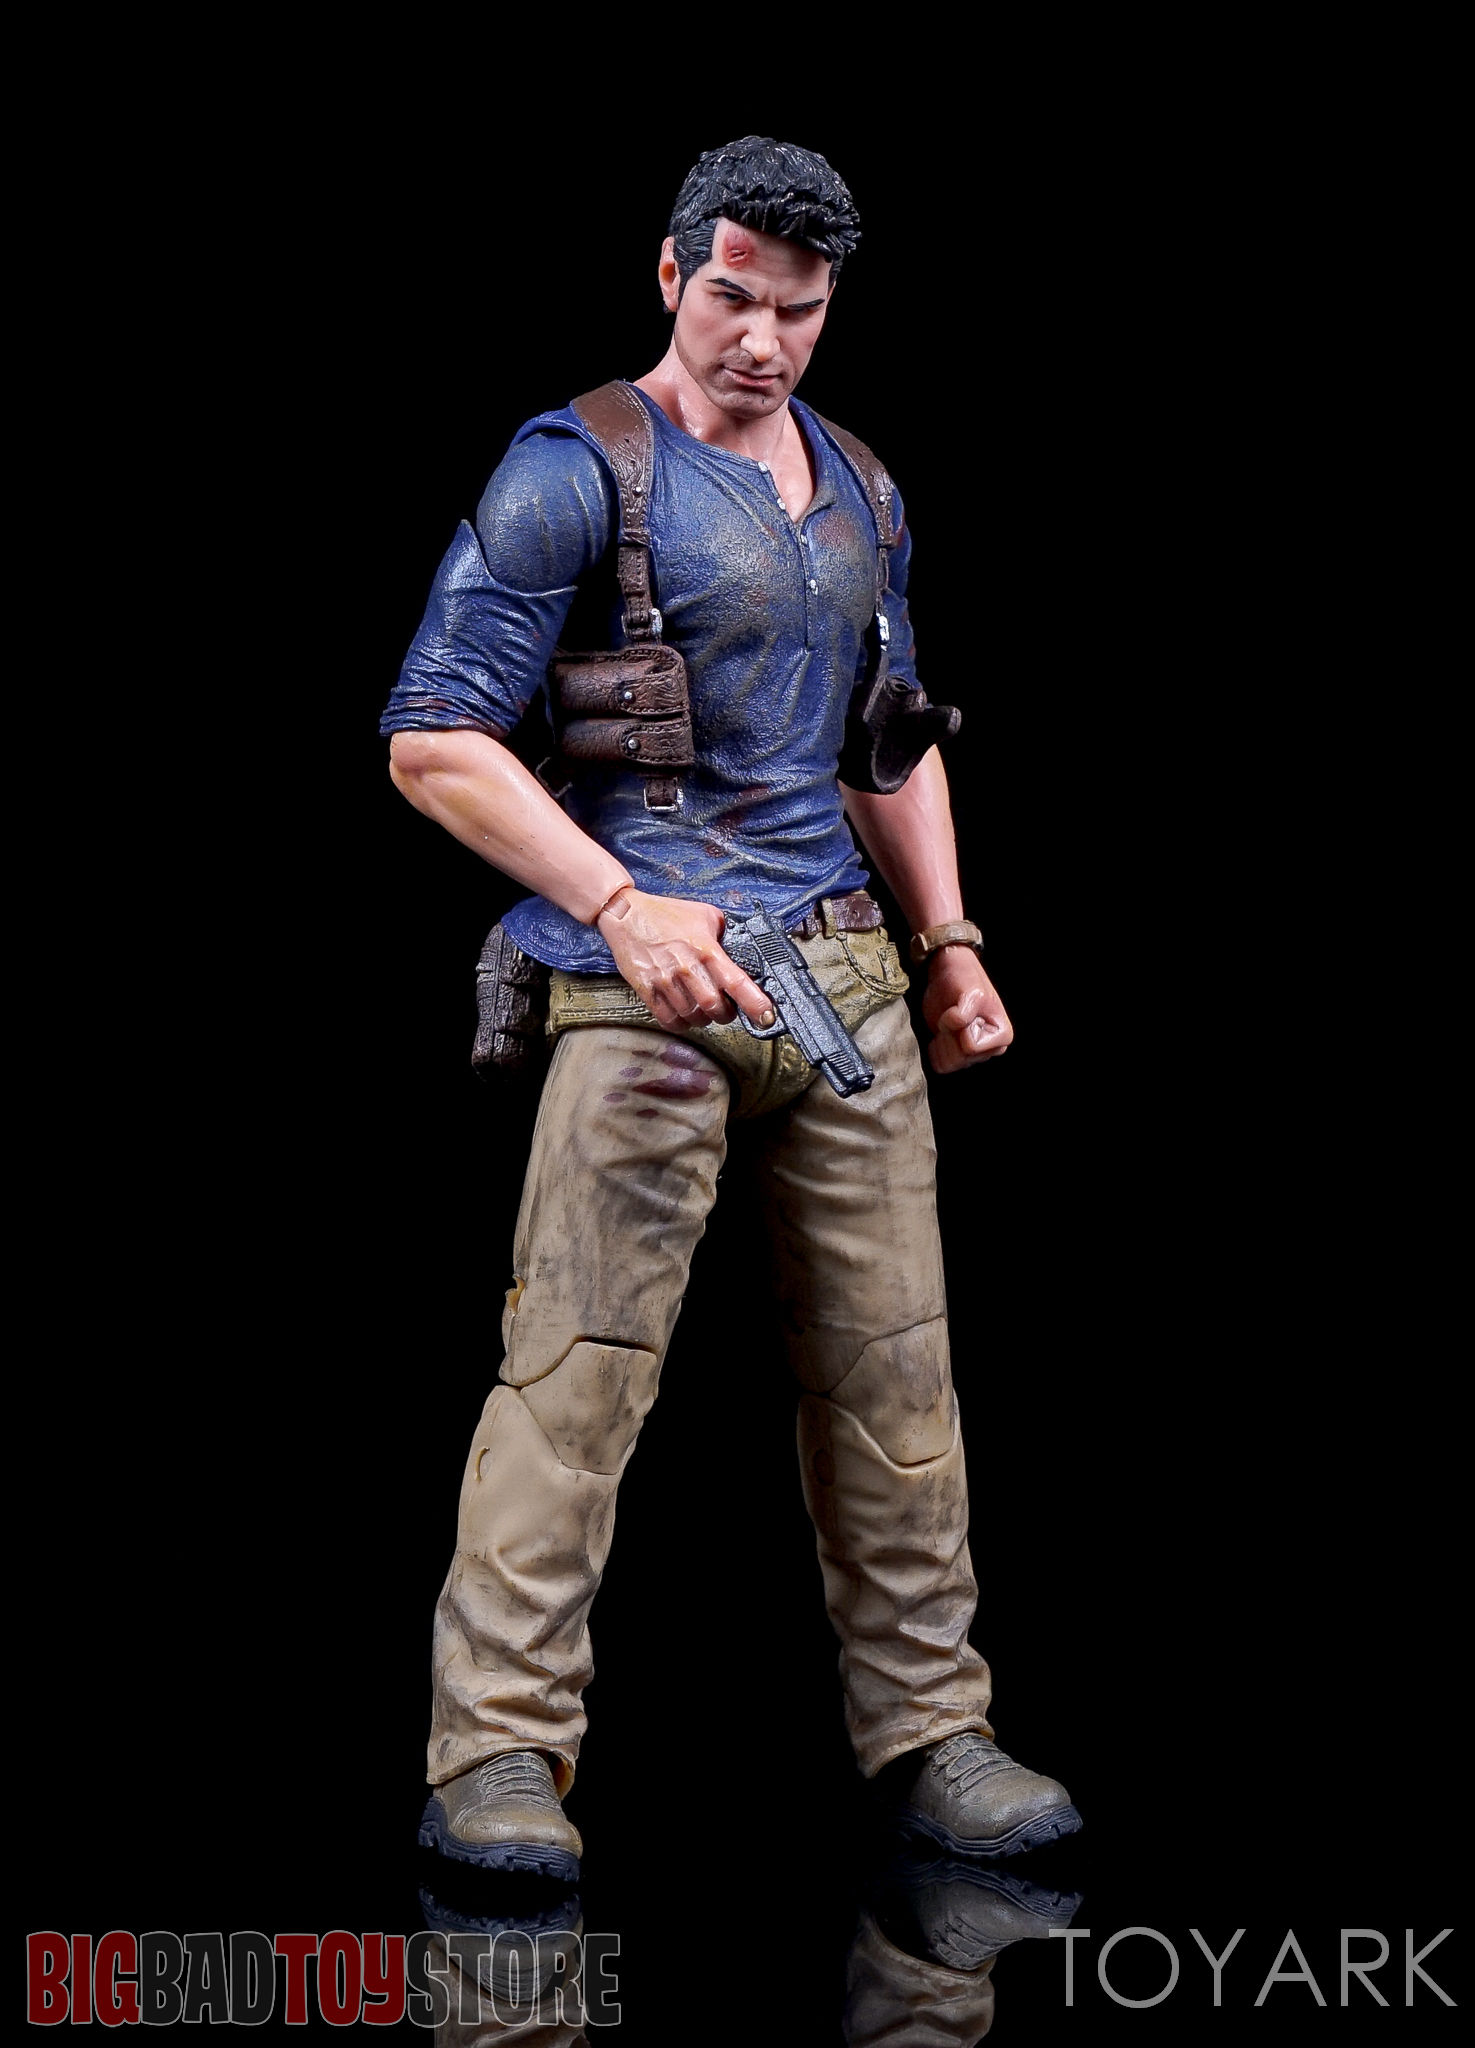 http://news.toyark.com/wp-content/uploads/sites/4/2016/09/NECA-Uncharted-4-Nathan-Drake-024.jpg